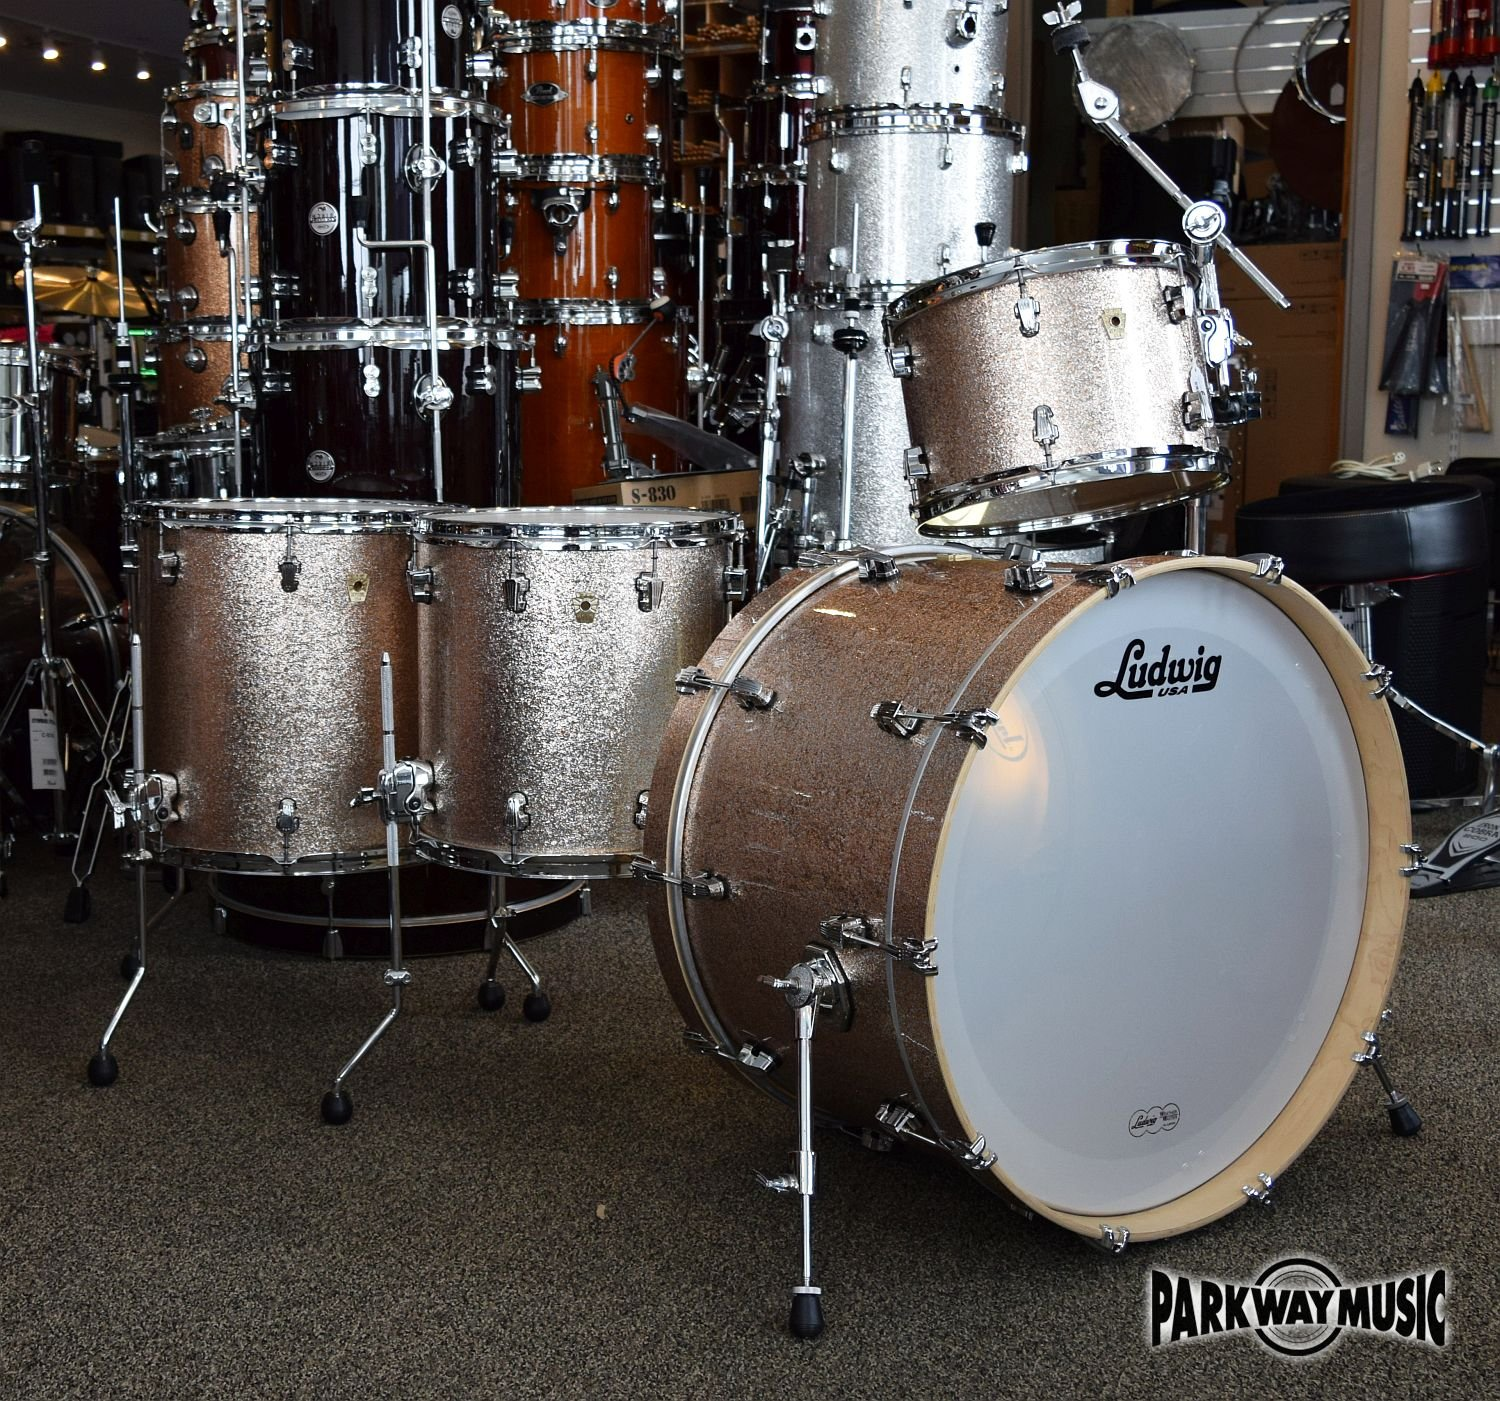 Ludwig Keystone 4pc Drum Set (USED) - SOLD